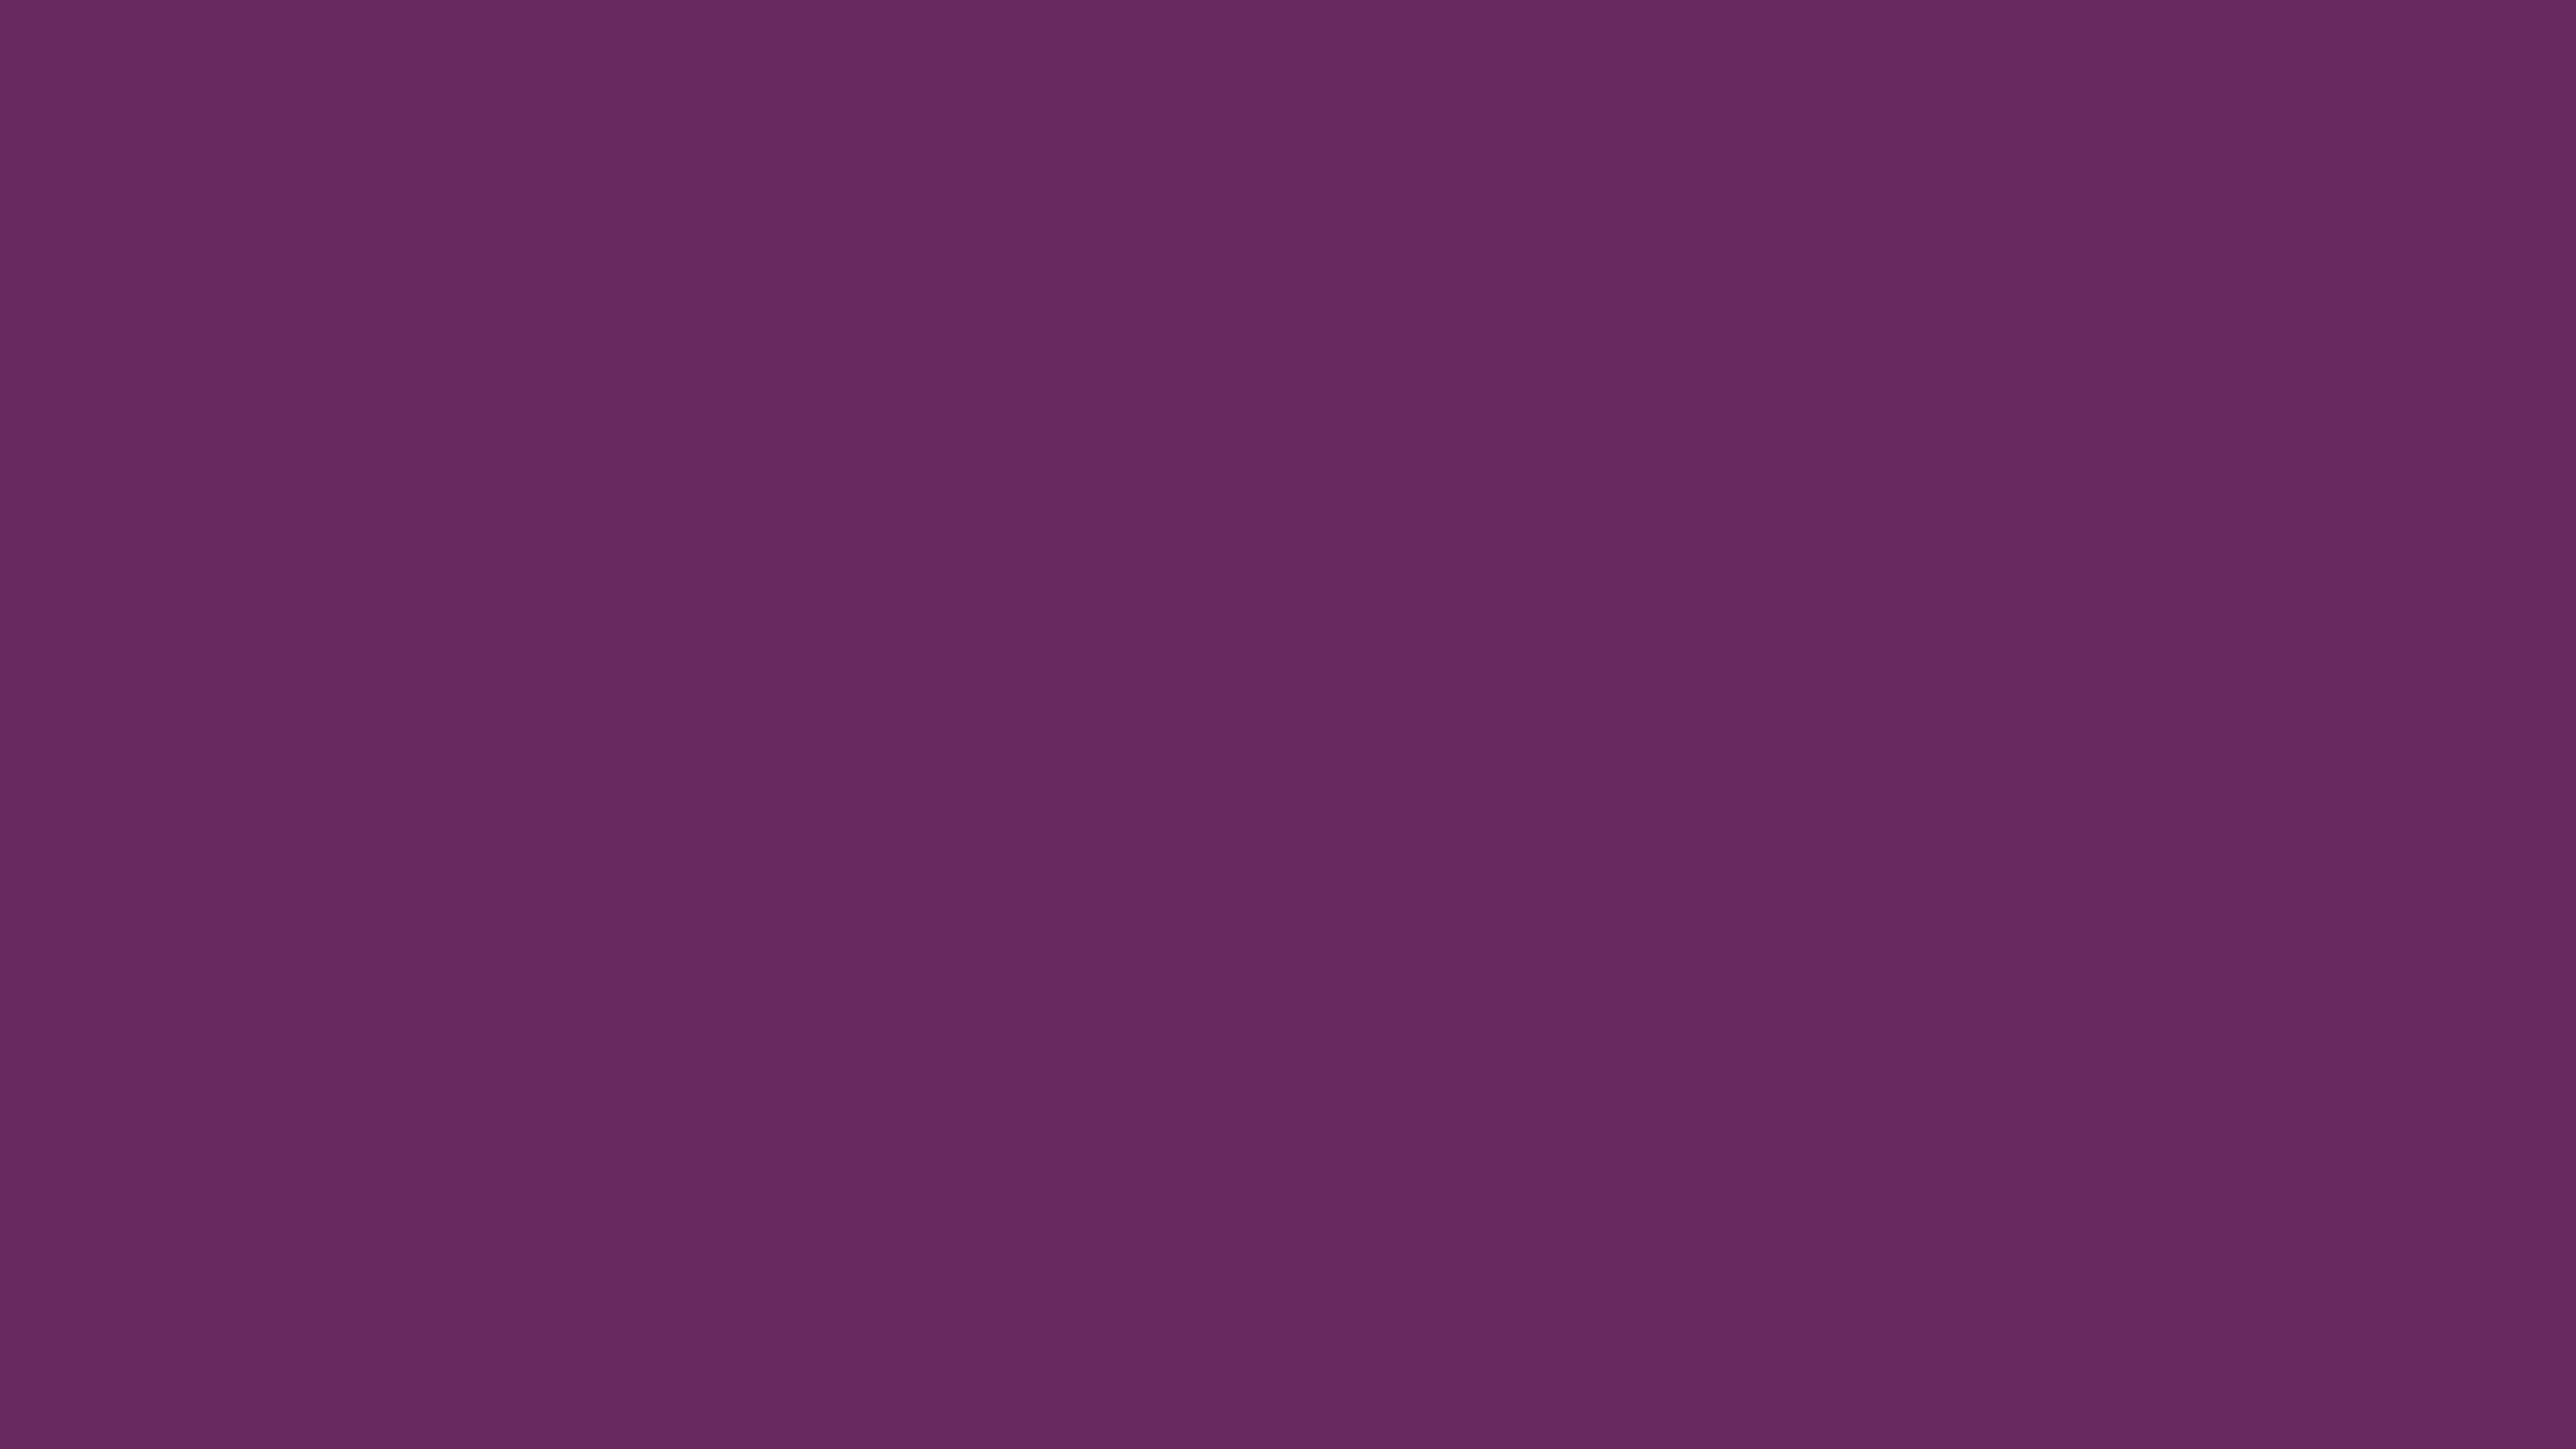 3840x2160 Palatinate Purple Solid Color Background